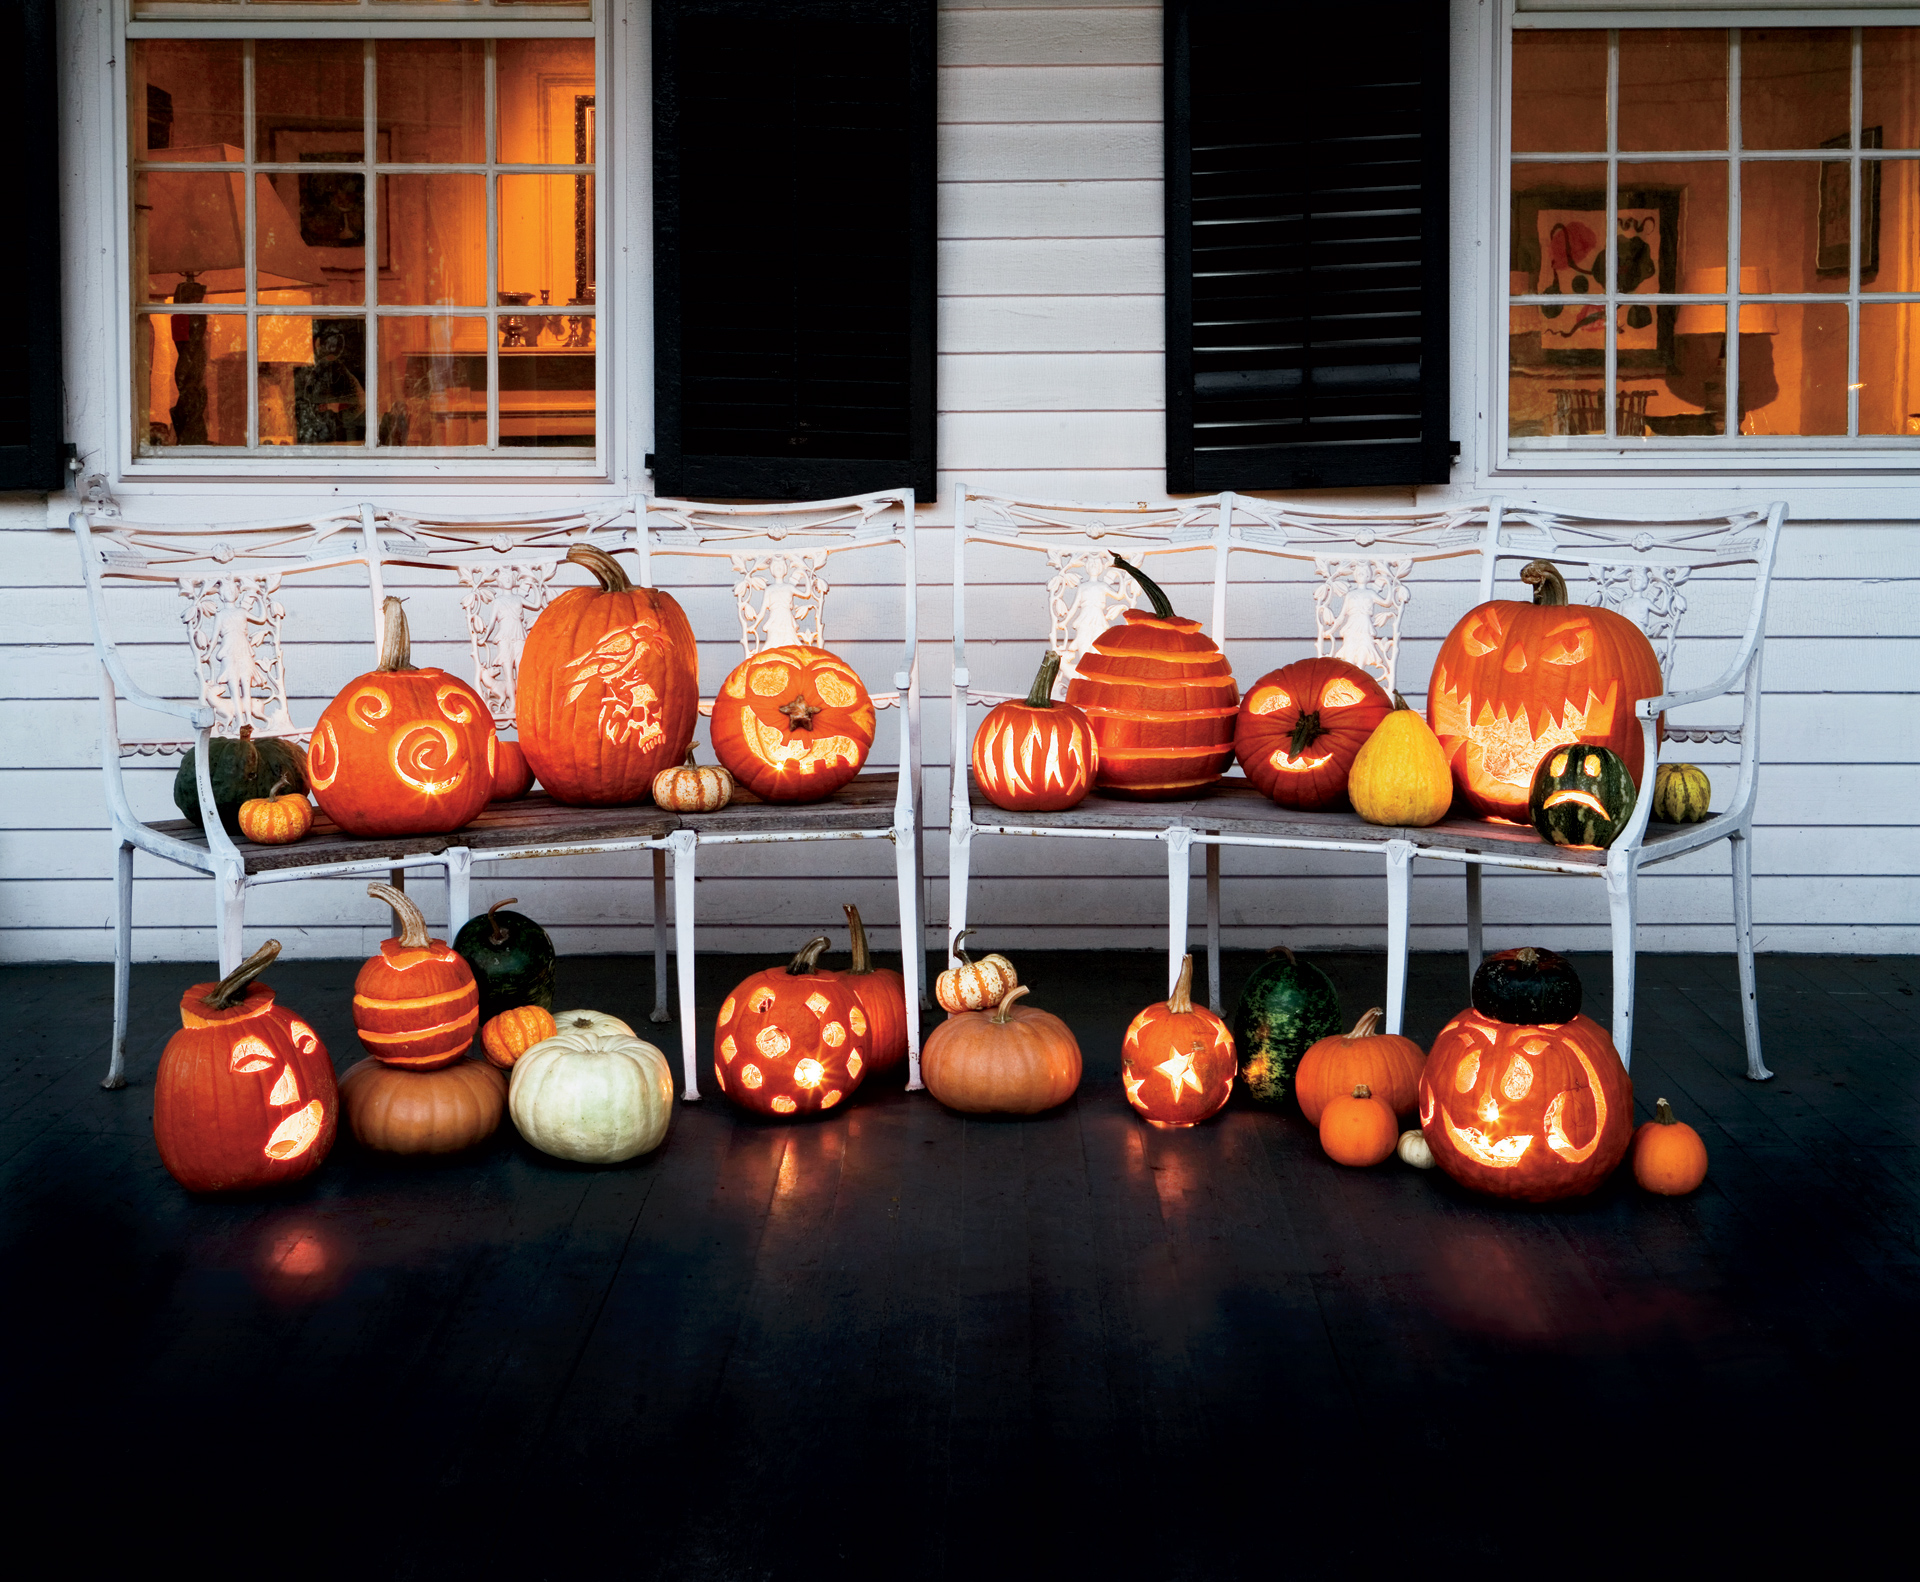 11 fun halloween decorating ideas easy halloween decorations How to make easy halloween decorations at home